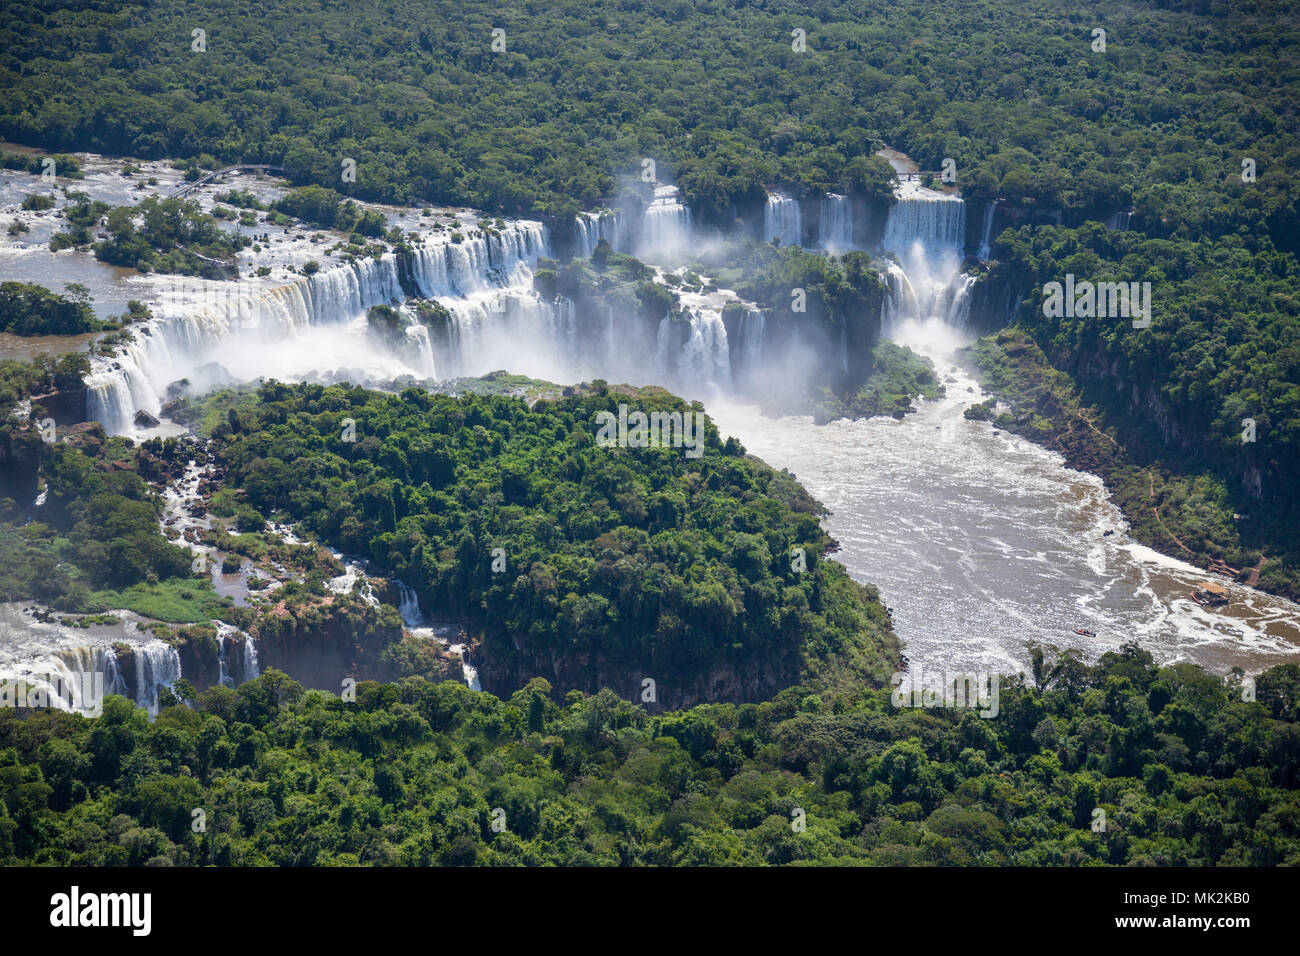 Aerial view of the Iguassu or Iguacu falls - the world's biggest waterfall system on the border of Brazil an Argentina Stock Photo